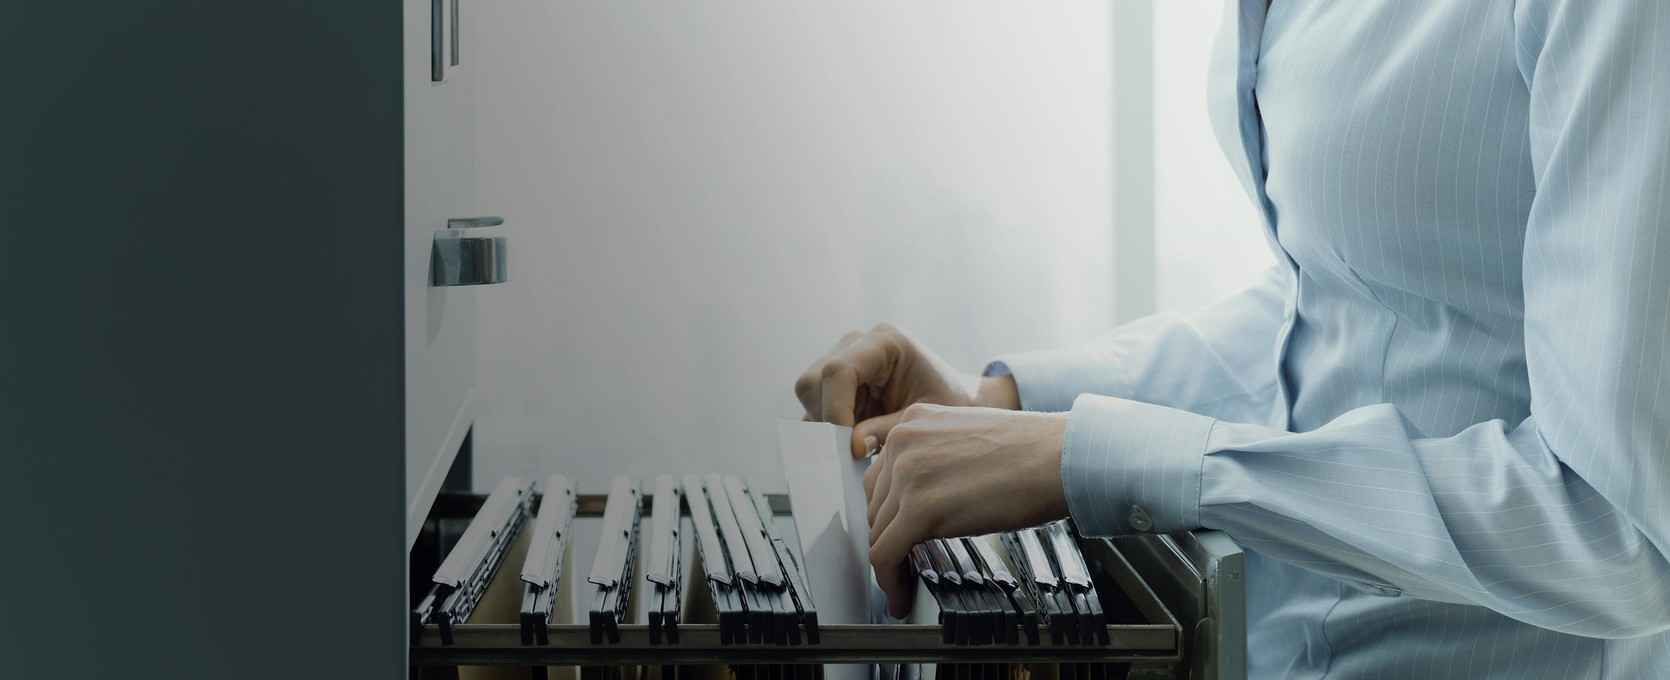 Professional looking through files in a filing cabinet